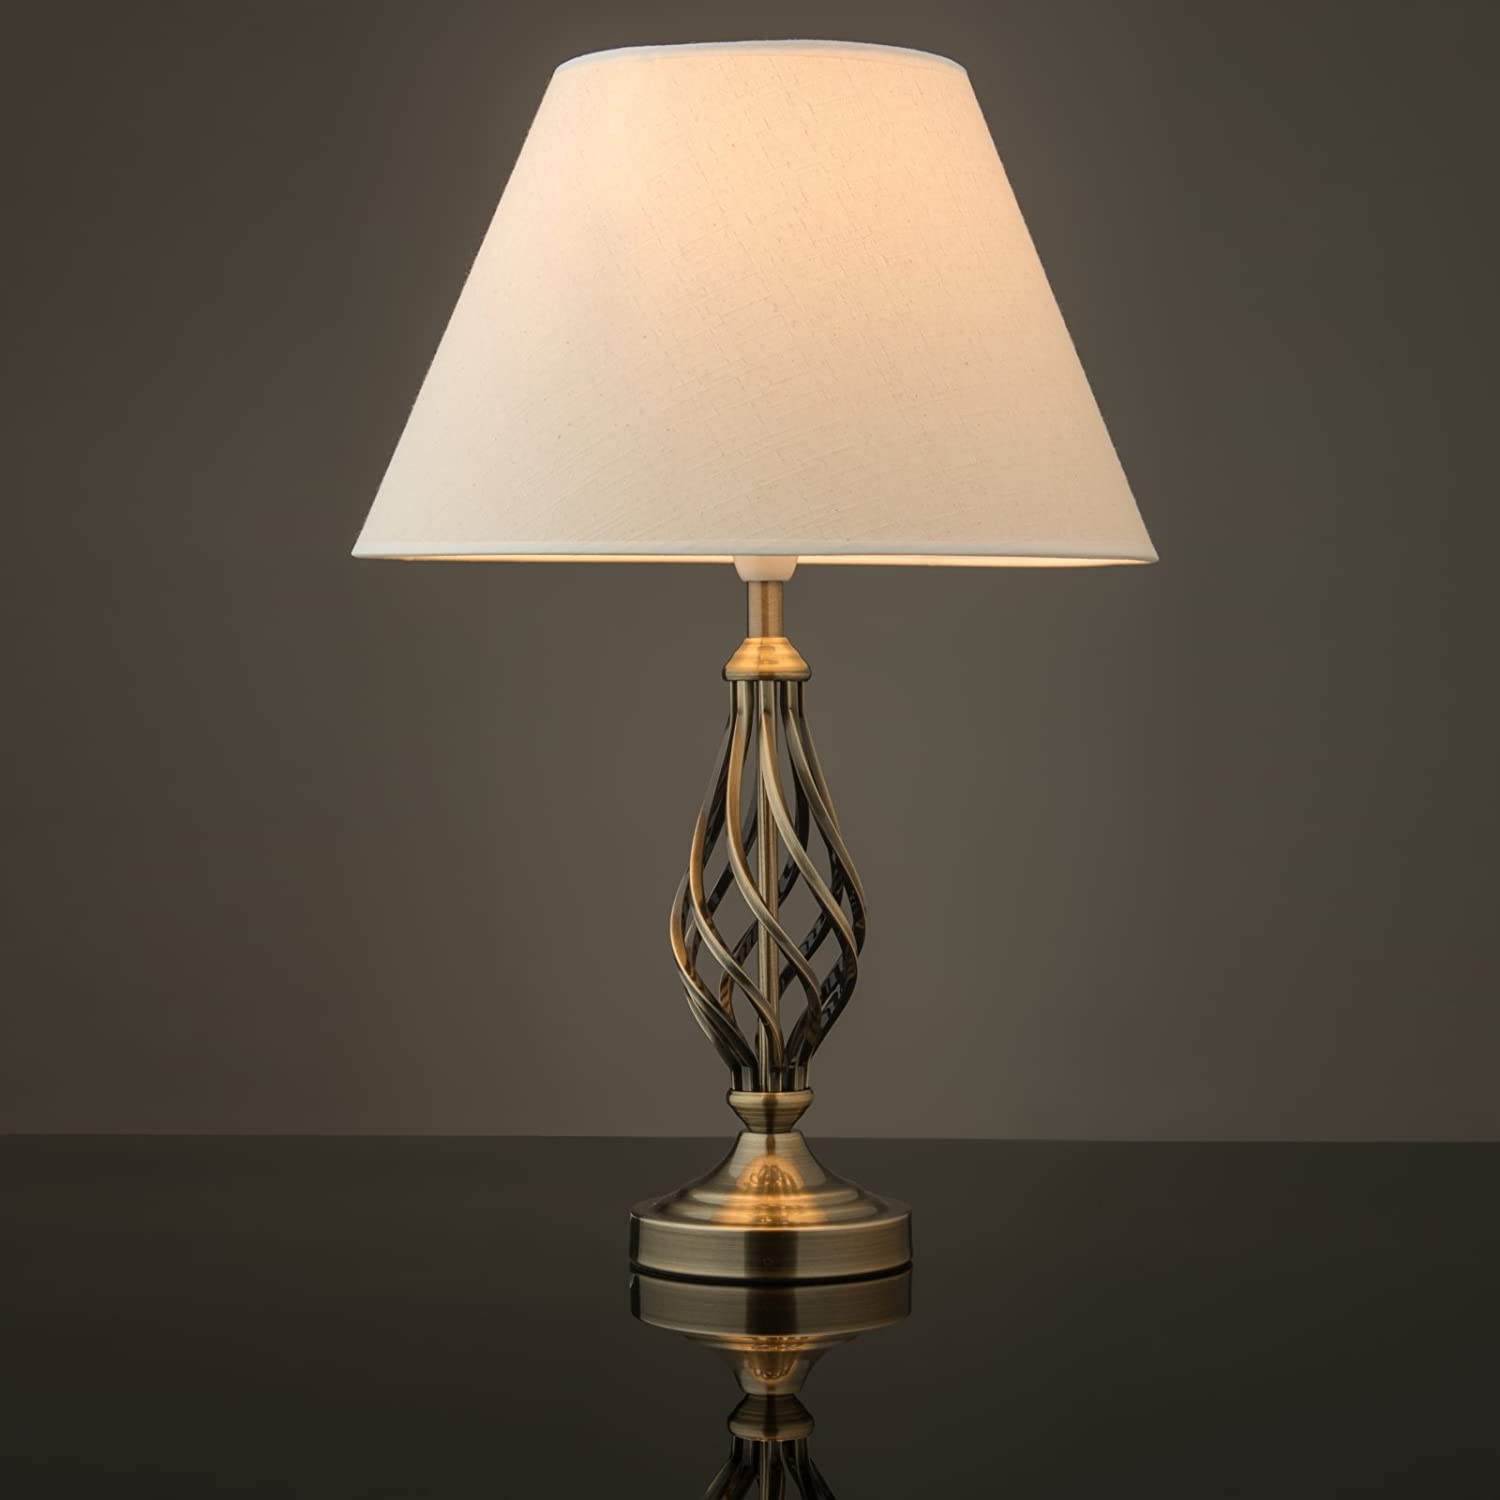 Kingswood Barley Twist Traditional Table Lamp - Antique Brass Lighting Supermarket AND0073